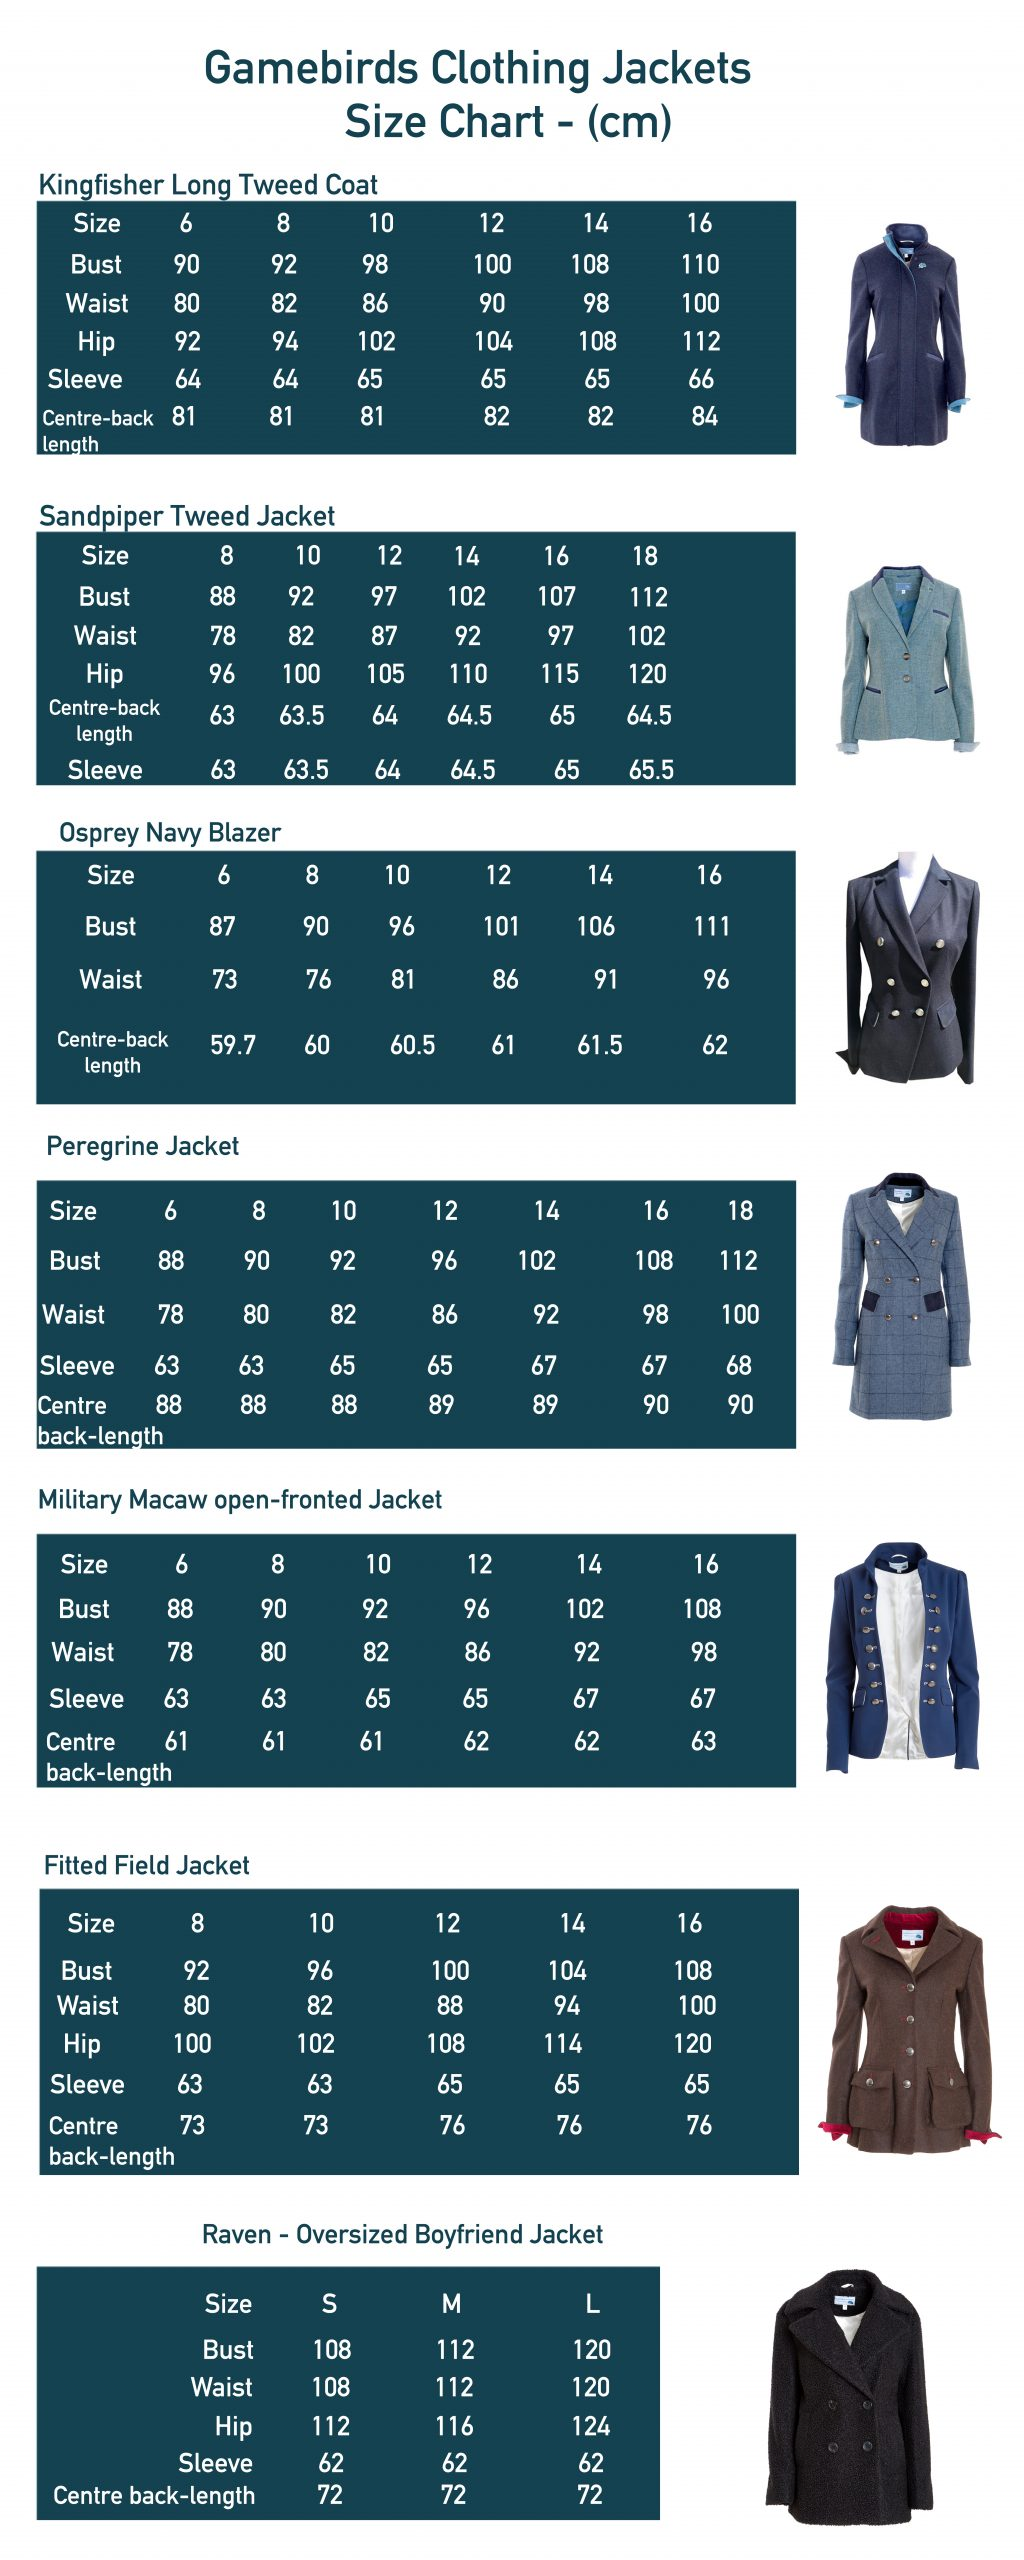 Gamebirds Clothing Size Chart